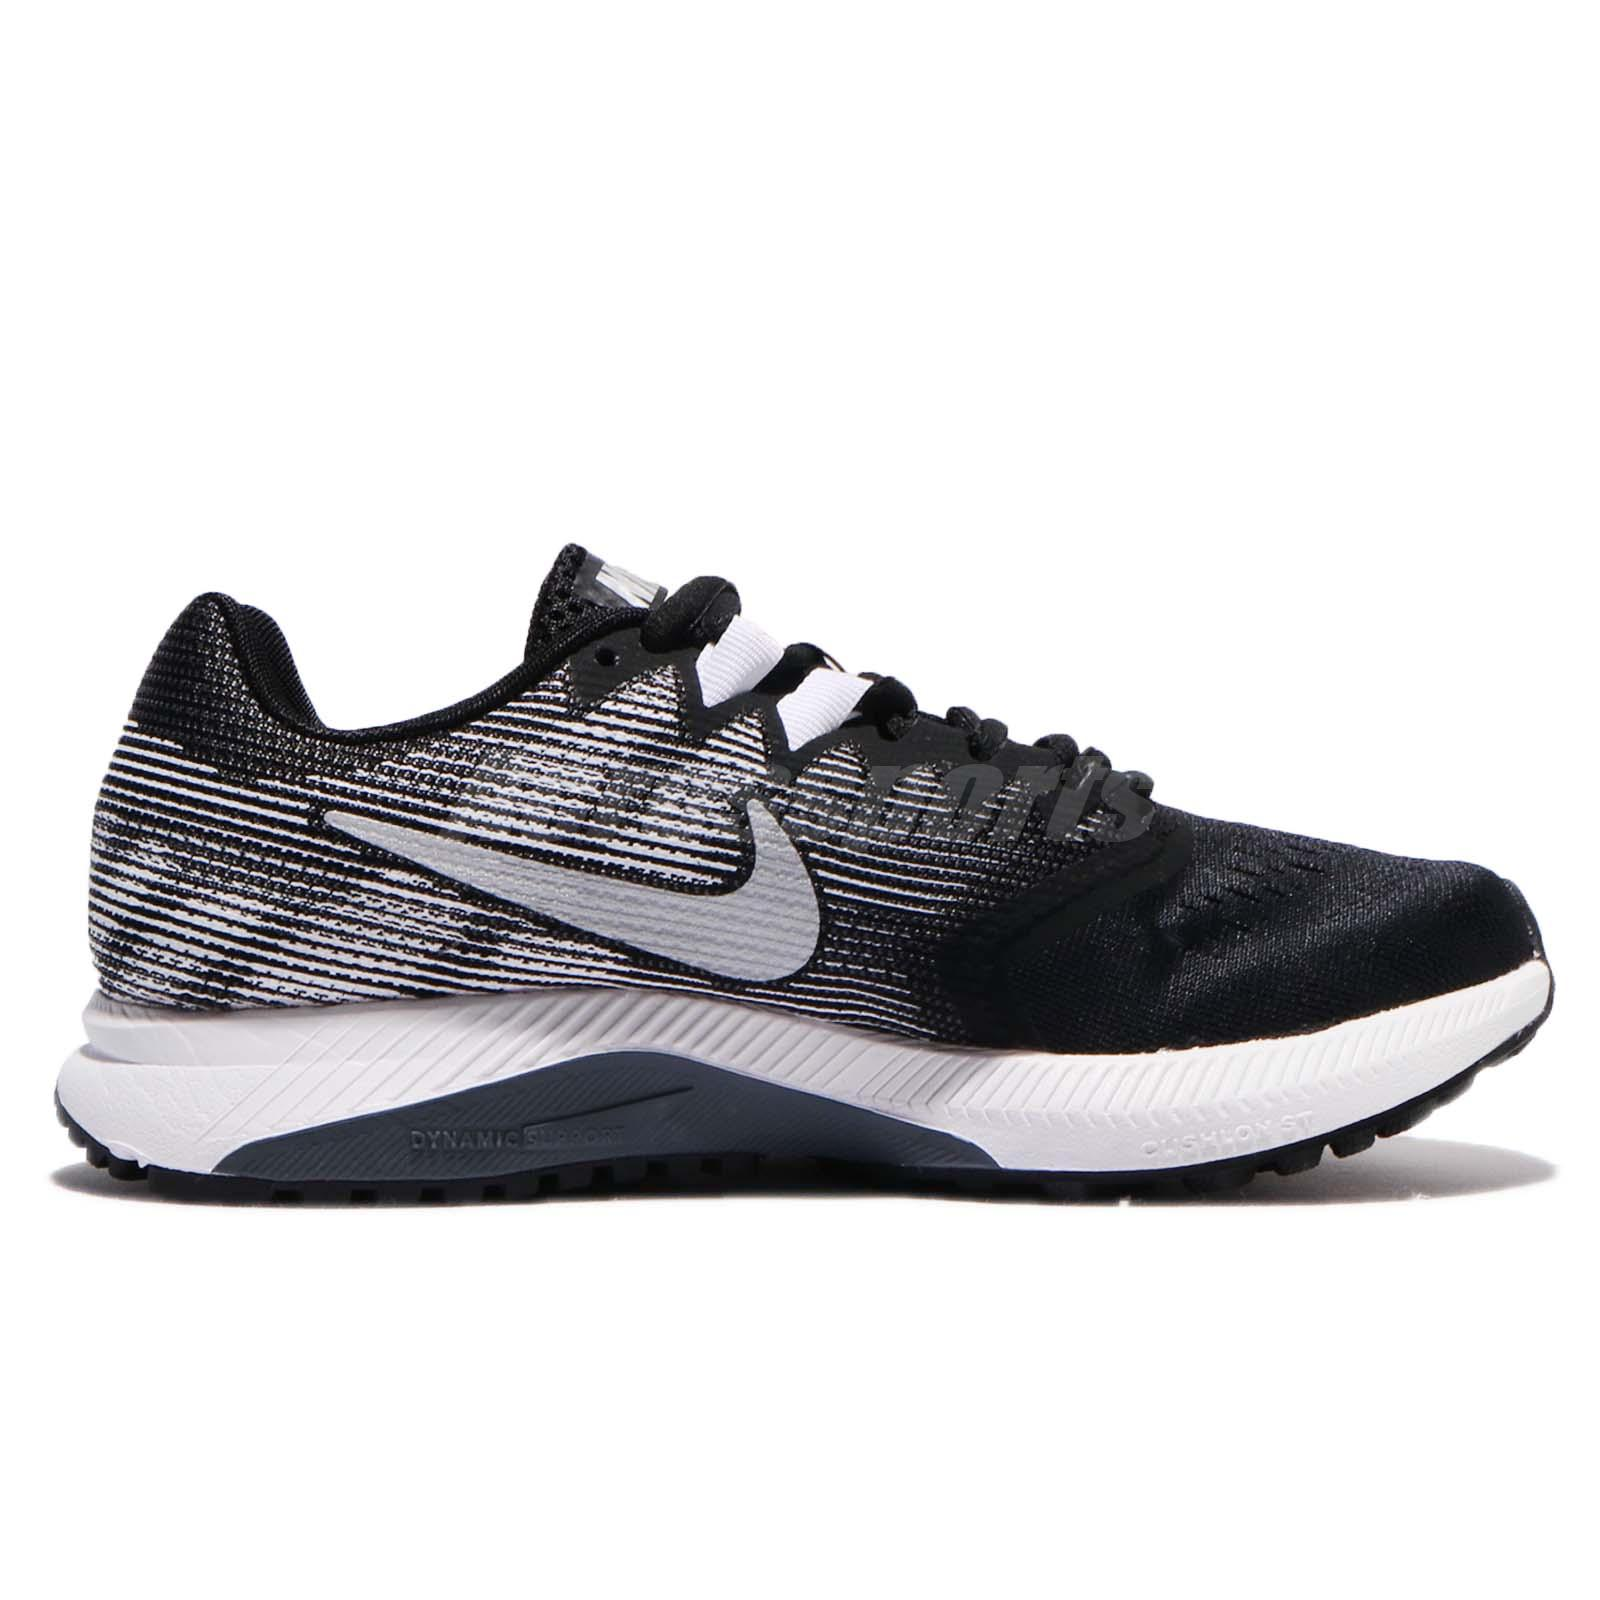 c80fb862c07d Wmns Nike Zoom Span 2 II Black Metallic Silver Women Running Shoes ...